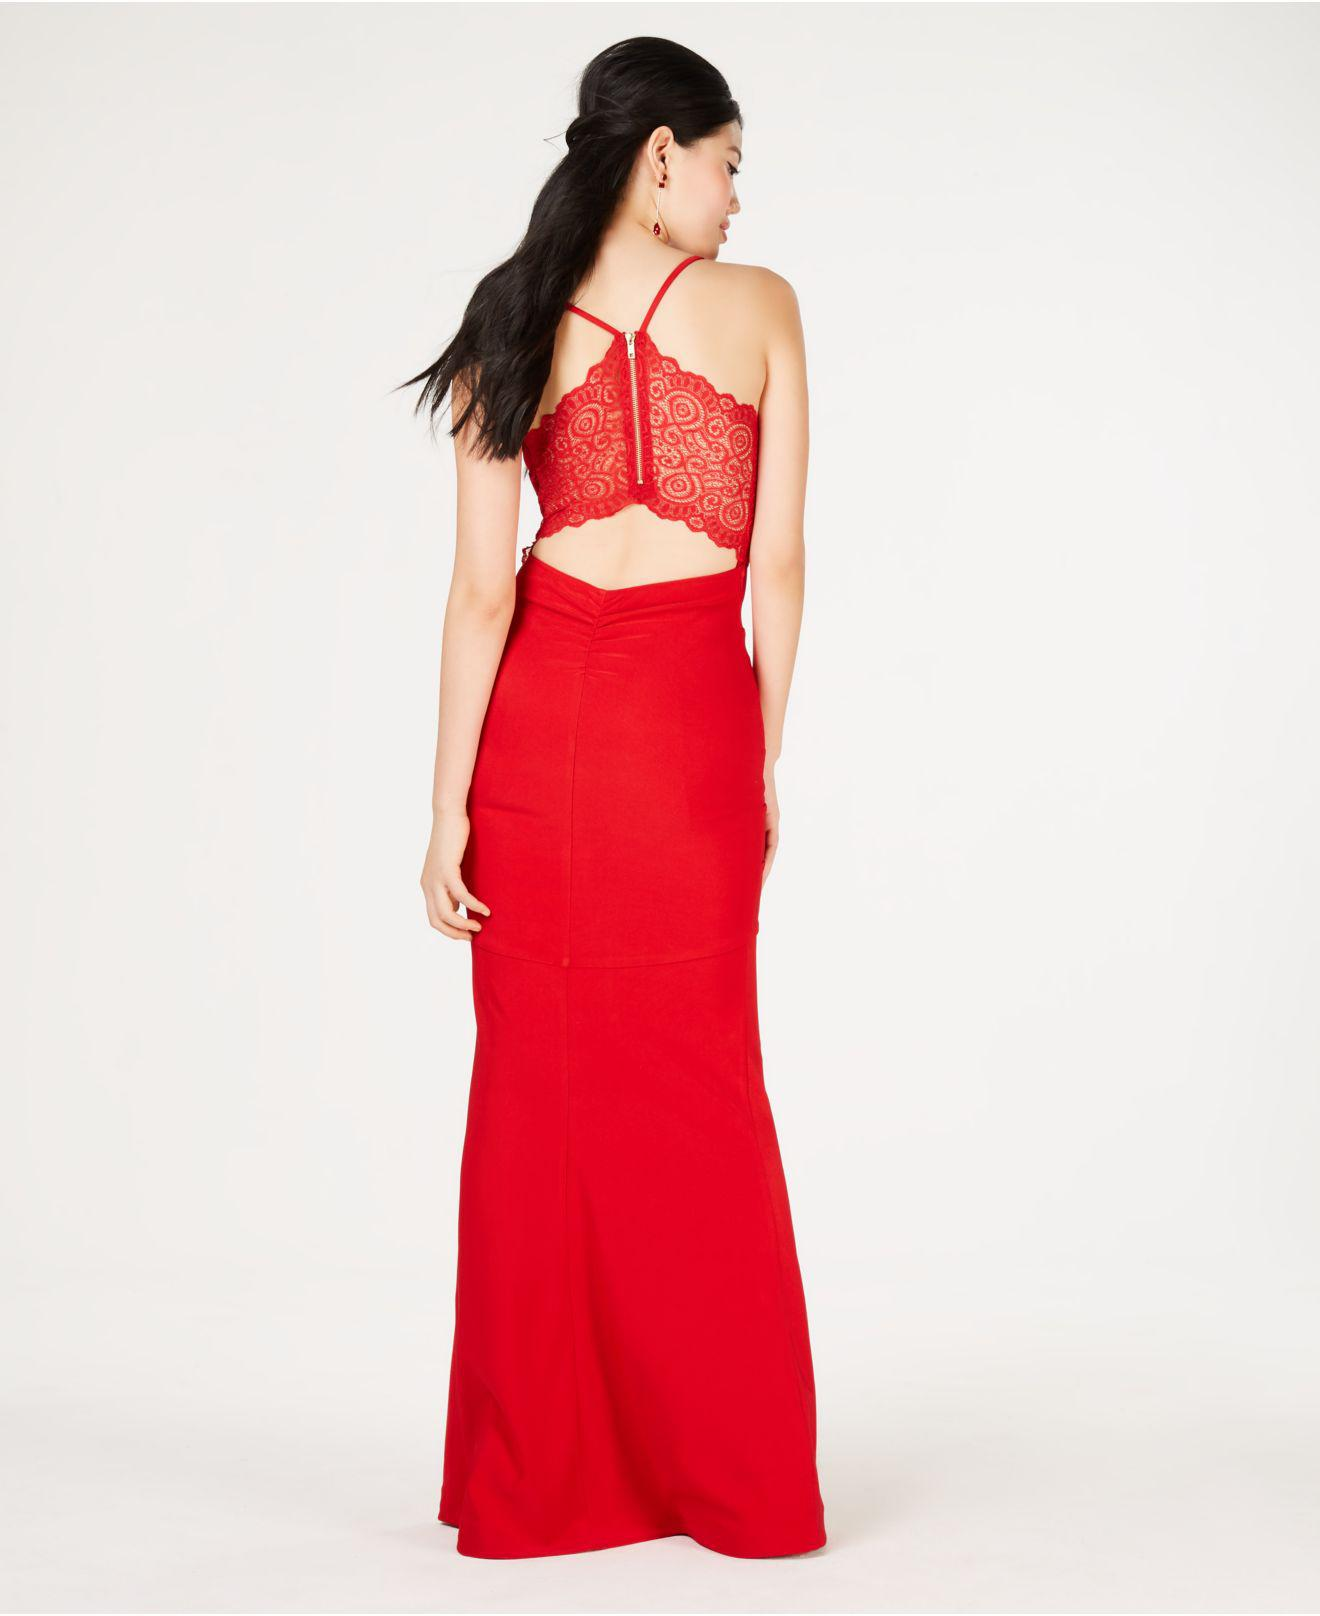 37be8fdb0 Emerald Sundae Juniors' Lace-racerback Gown in Red - Lyst